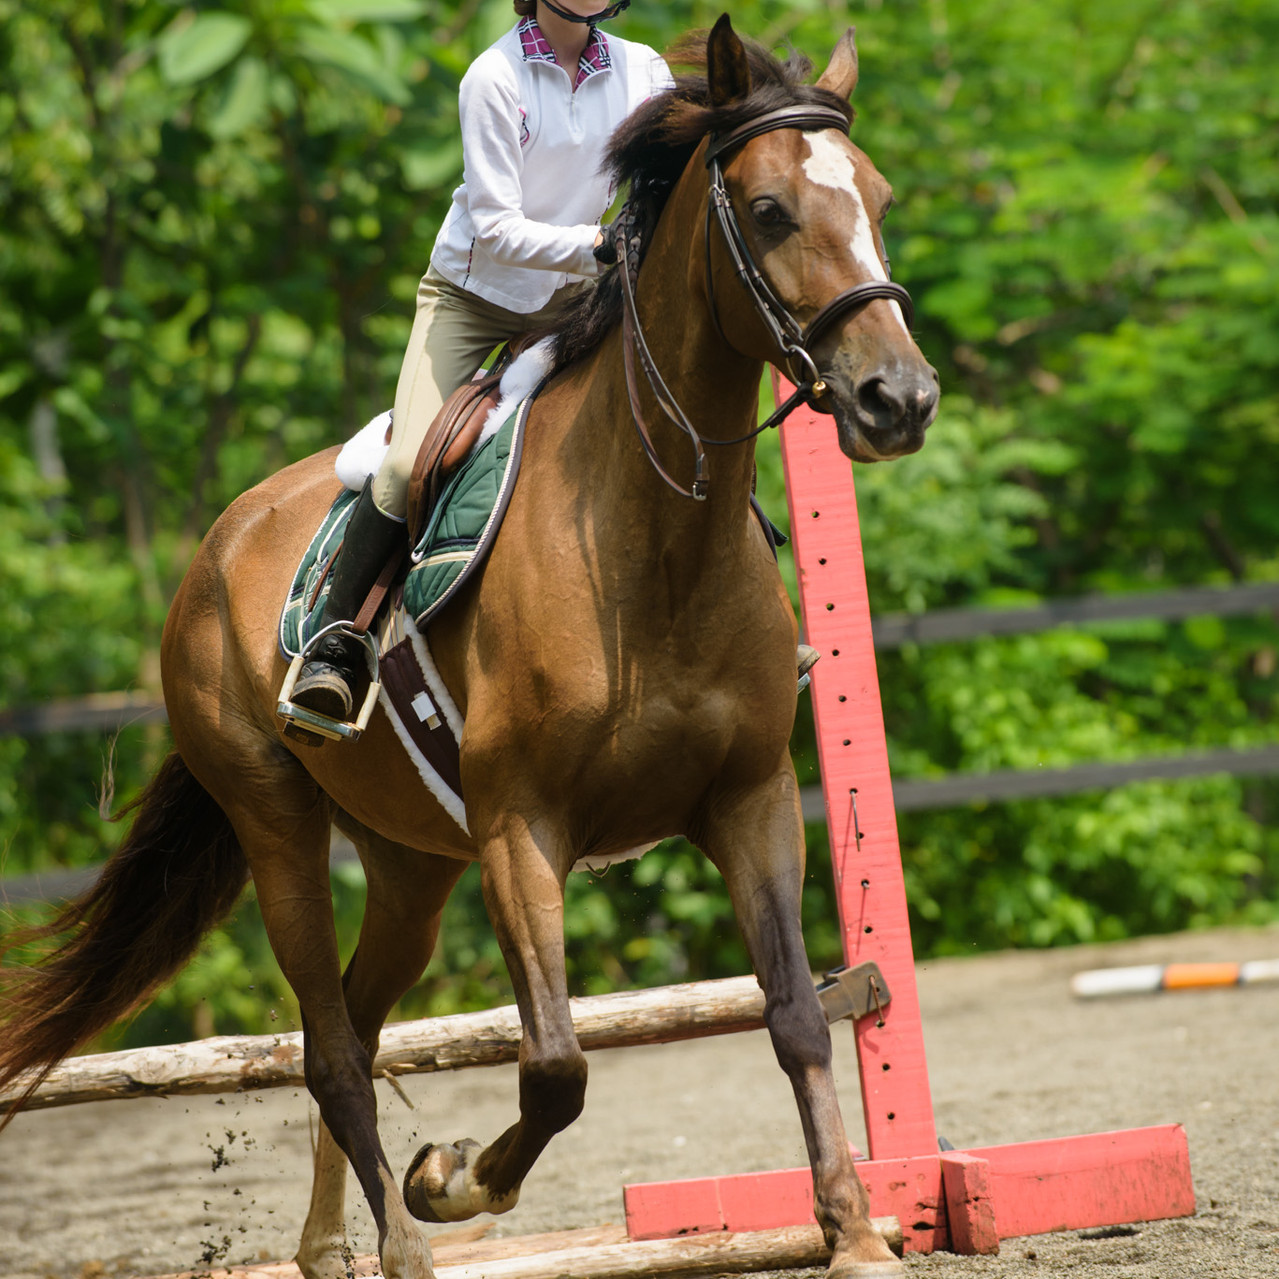 Professional equestrian photography in Costa Rica